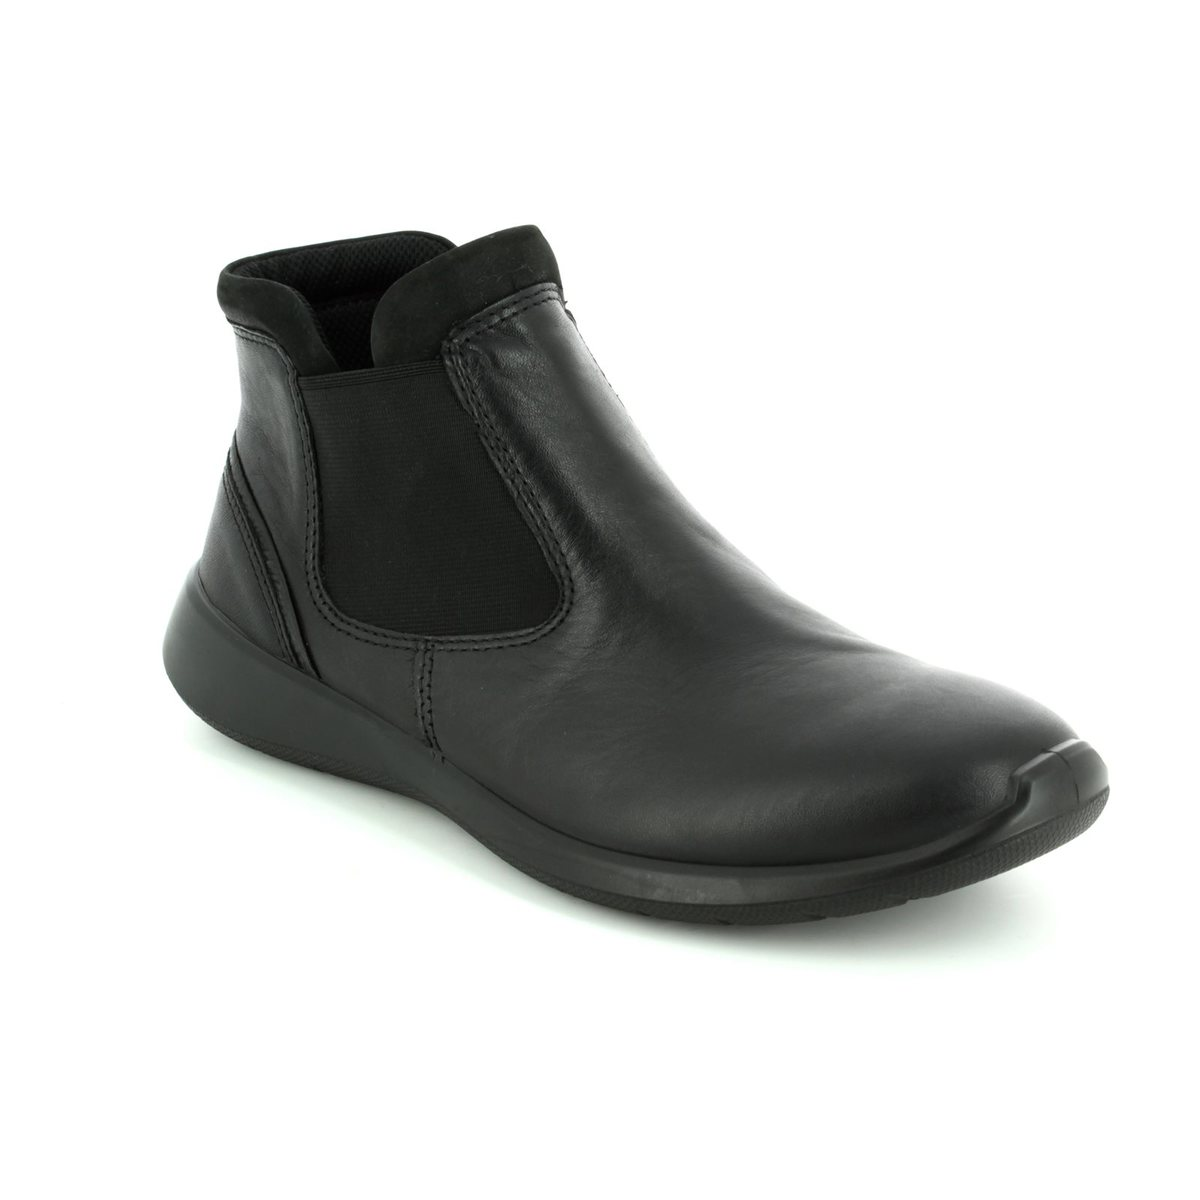 ecco SOFT 5 - Ankle boots - black 00aHfYc